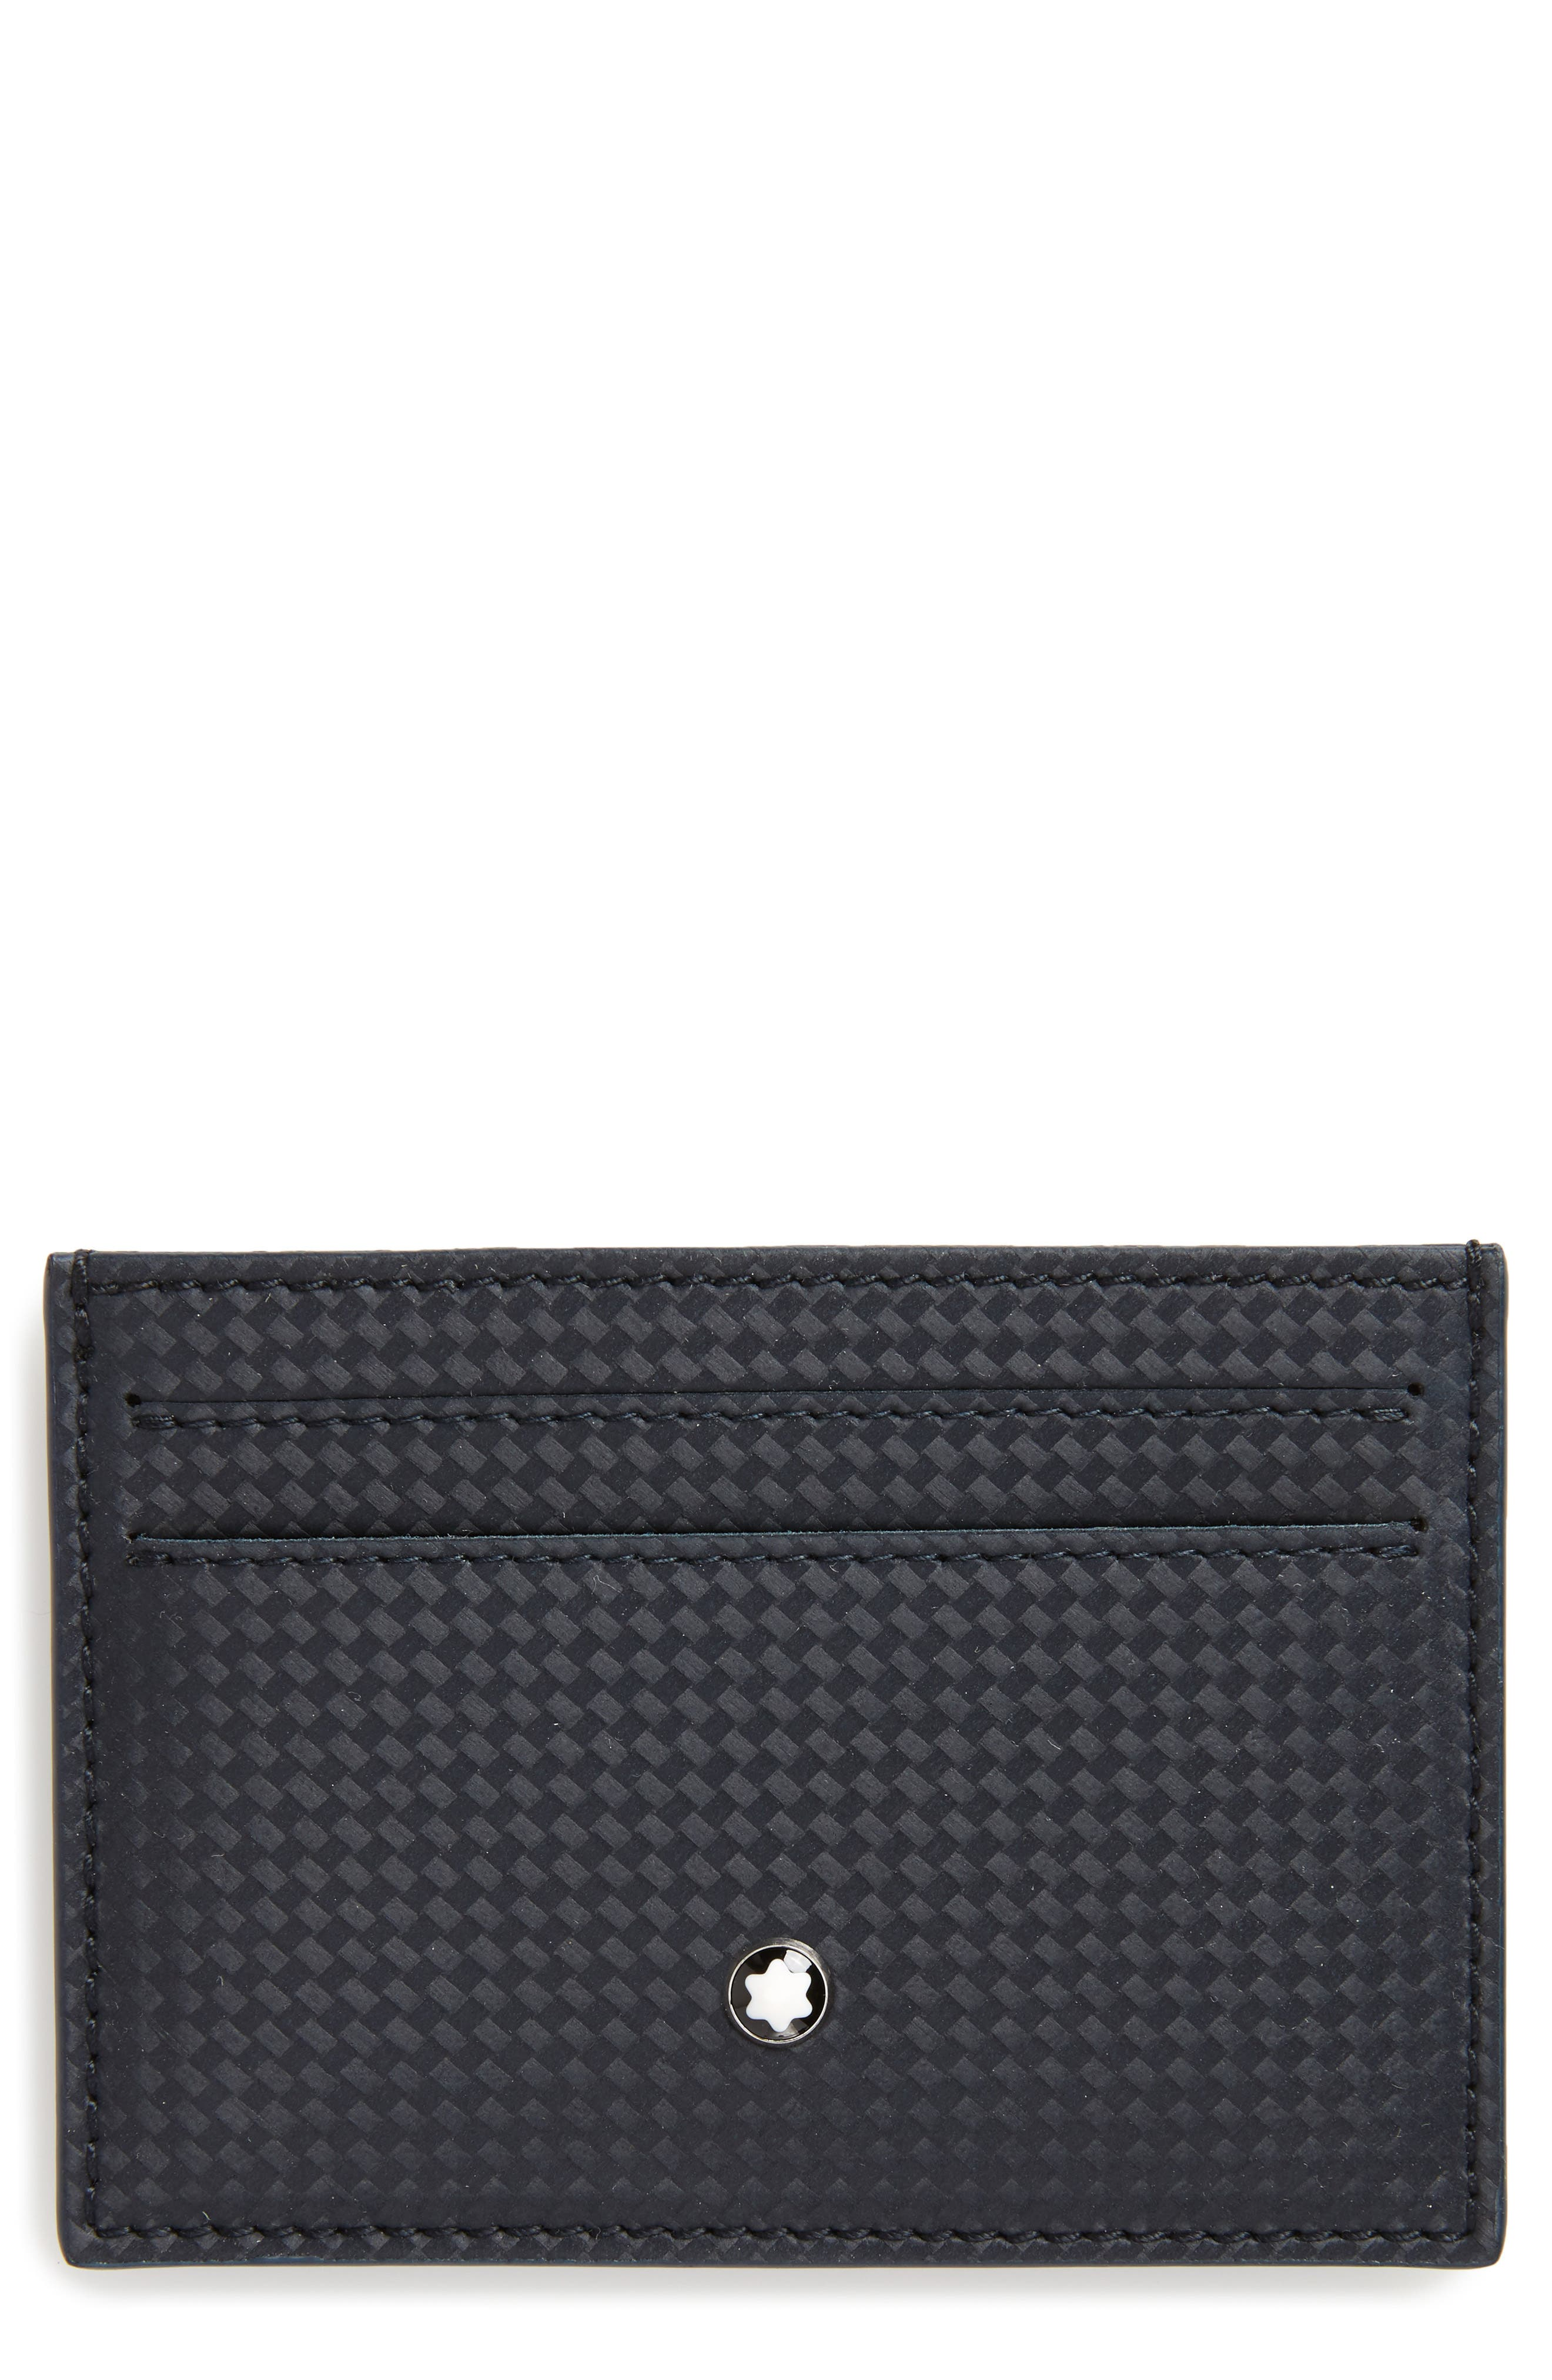 MONTBLANC Extreme Leather Card Case, Main, color, 400